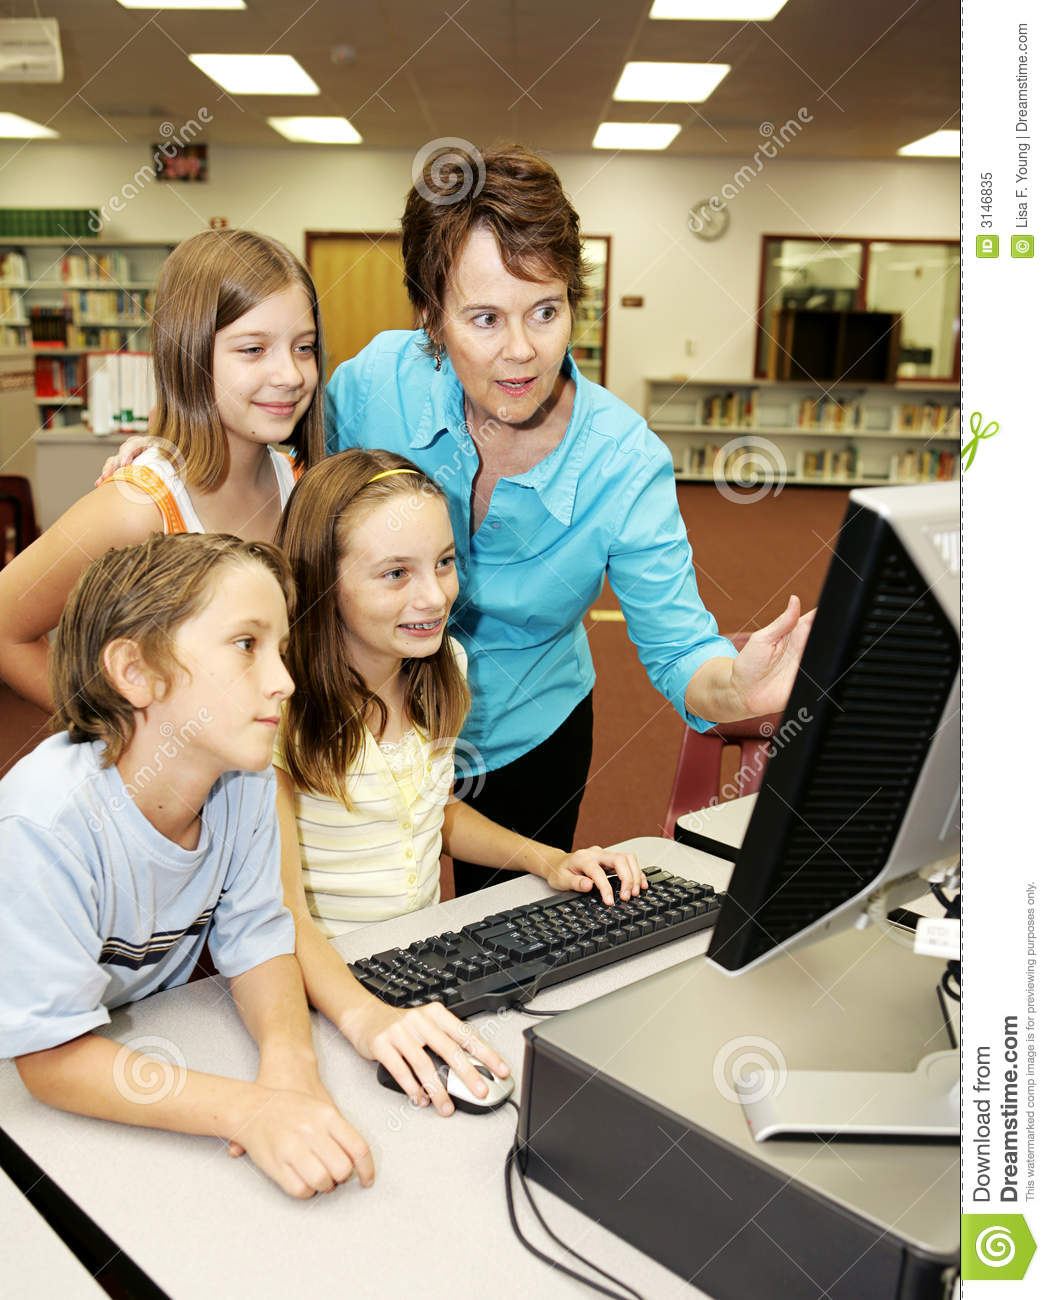 Kids Learn Computer Stock Image. Image Of Elementary